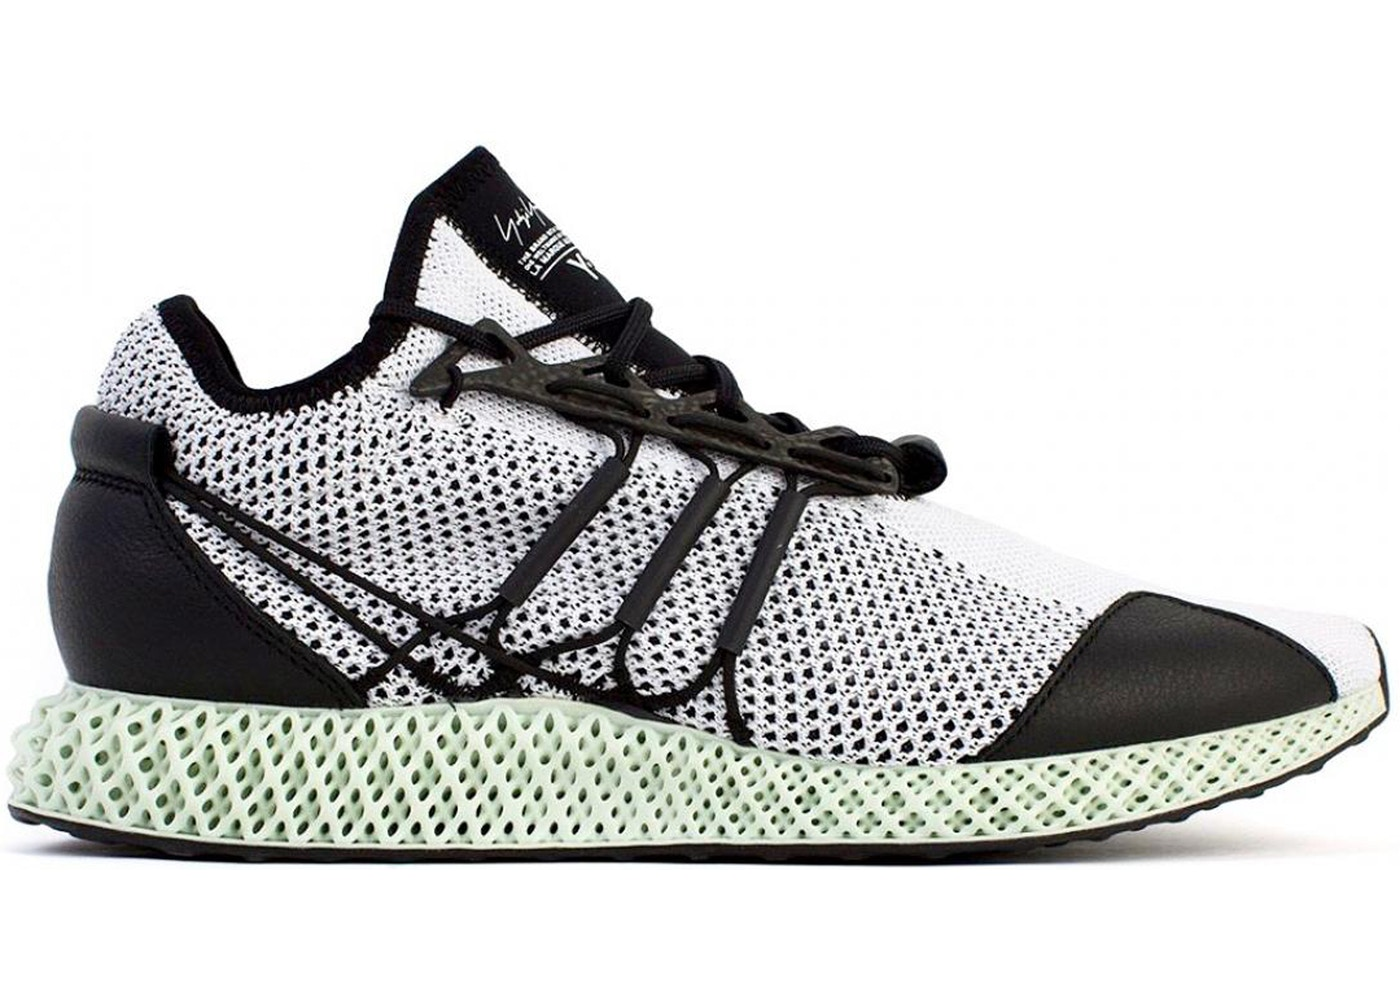 adidas Y-3 Runner 4D Black White